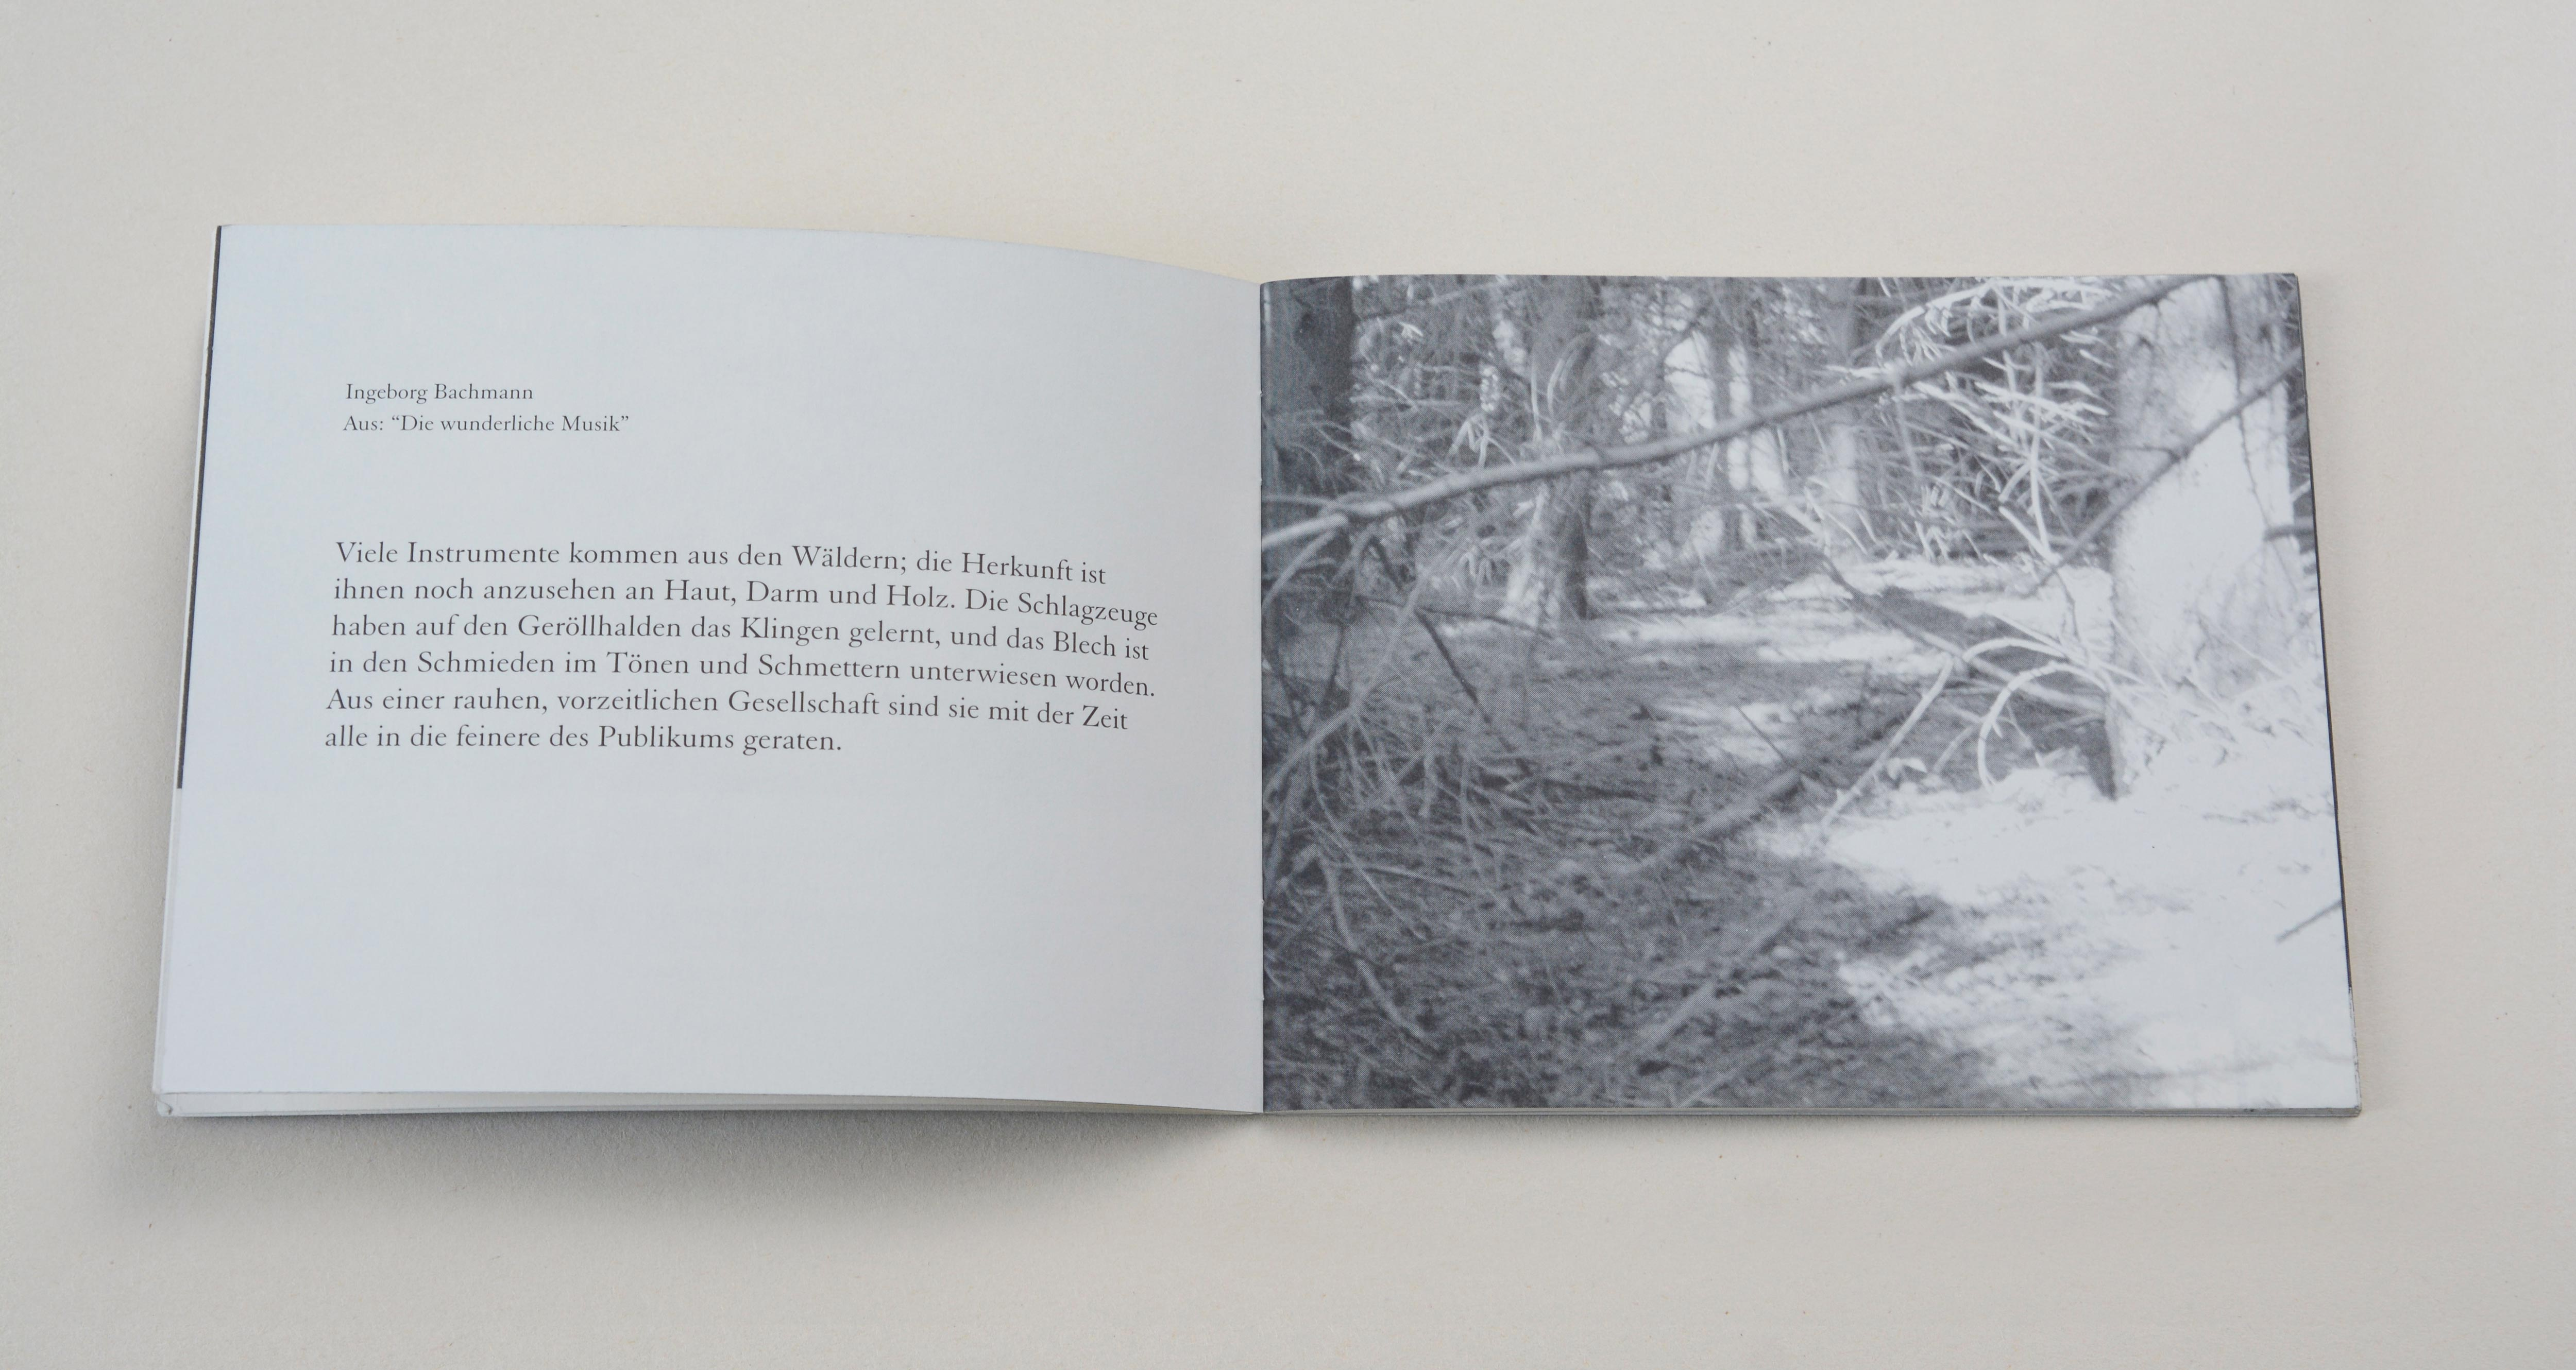 Double page. Left: Block of text. Right: Full-page b/w image. Inside the forest.